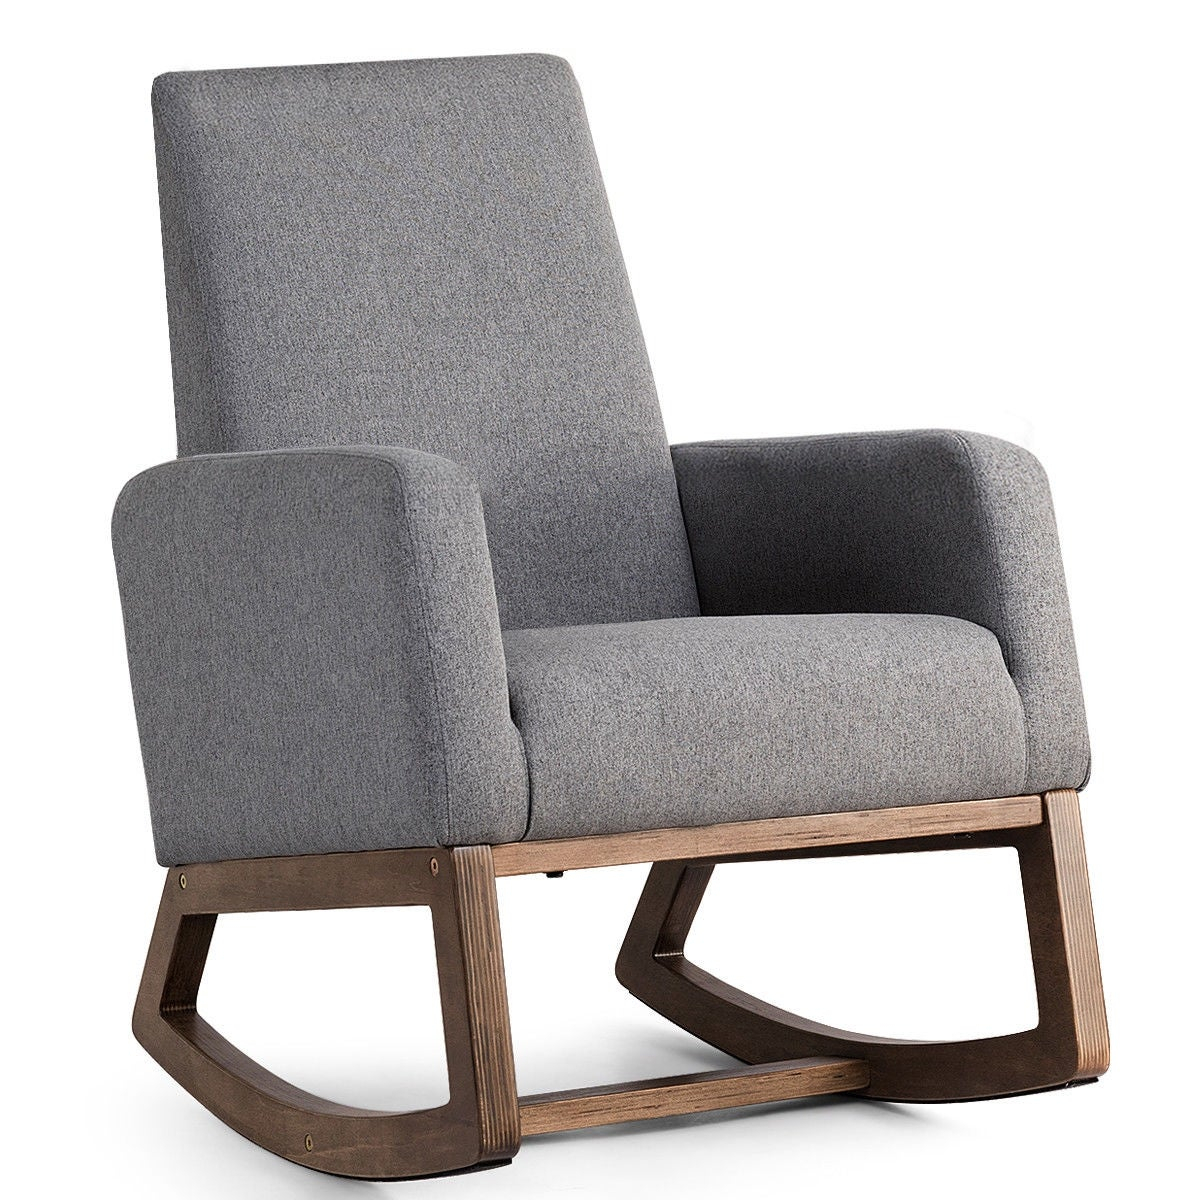 Costway Mid Century Retro Modern Fabric Upholstered Rocking Chair Relax Rocker Gray Intended For Mid Century Modern Fabric Rocking Chairs (View 3 of 20)